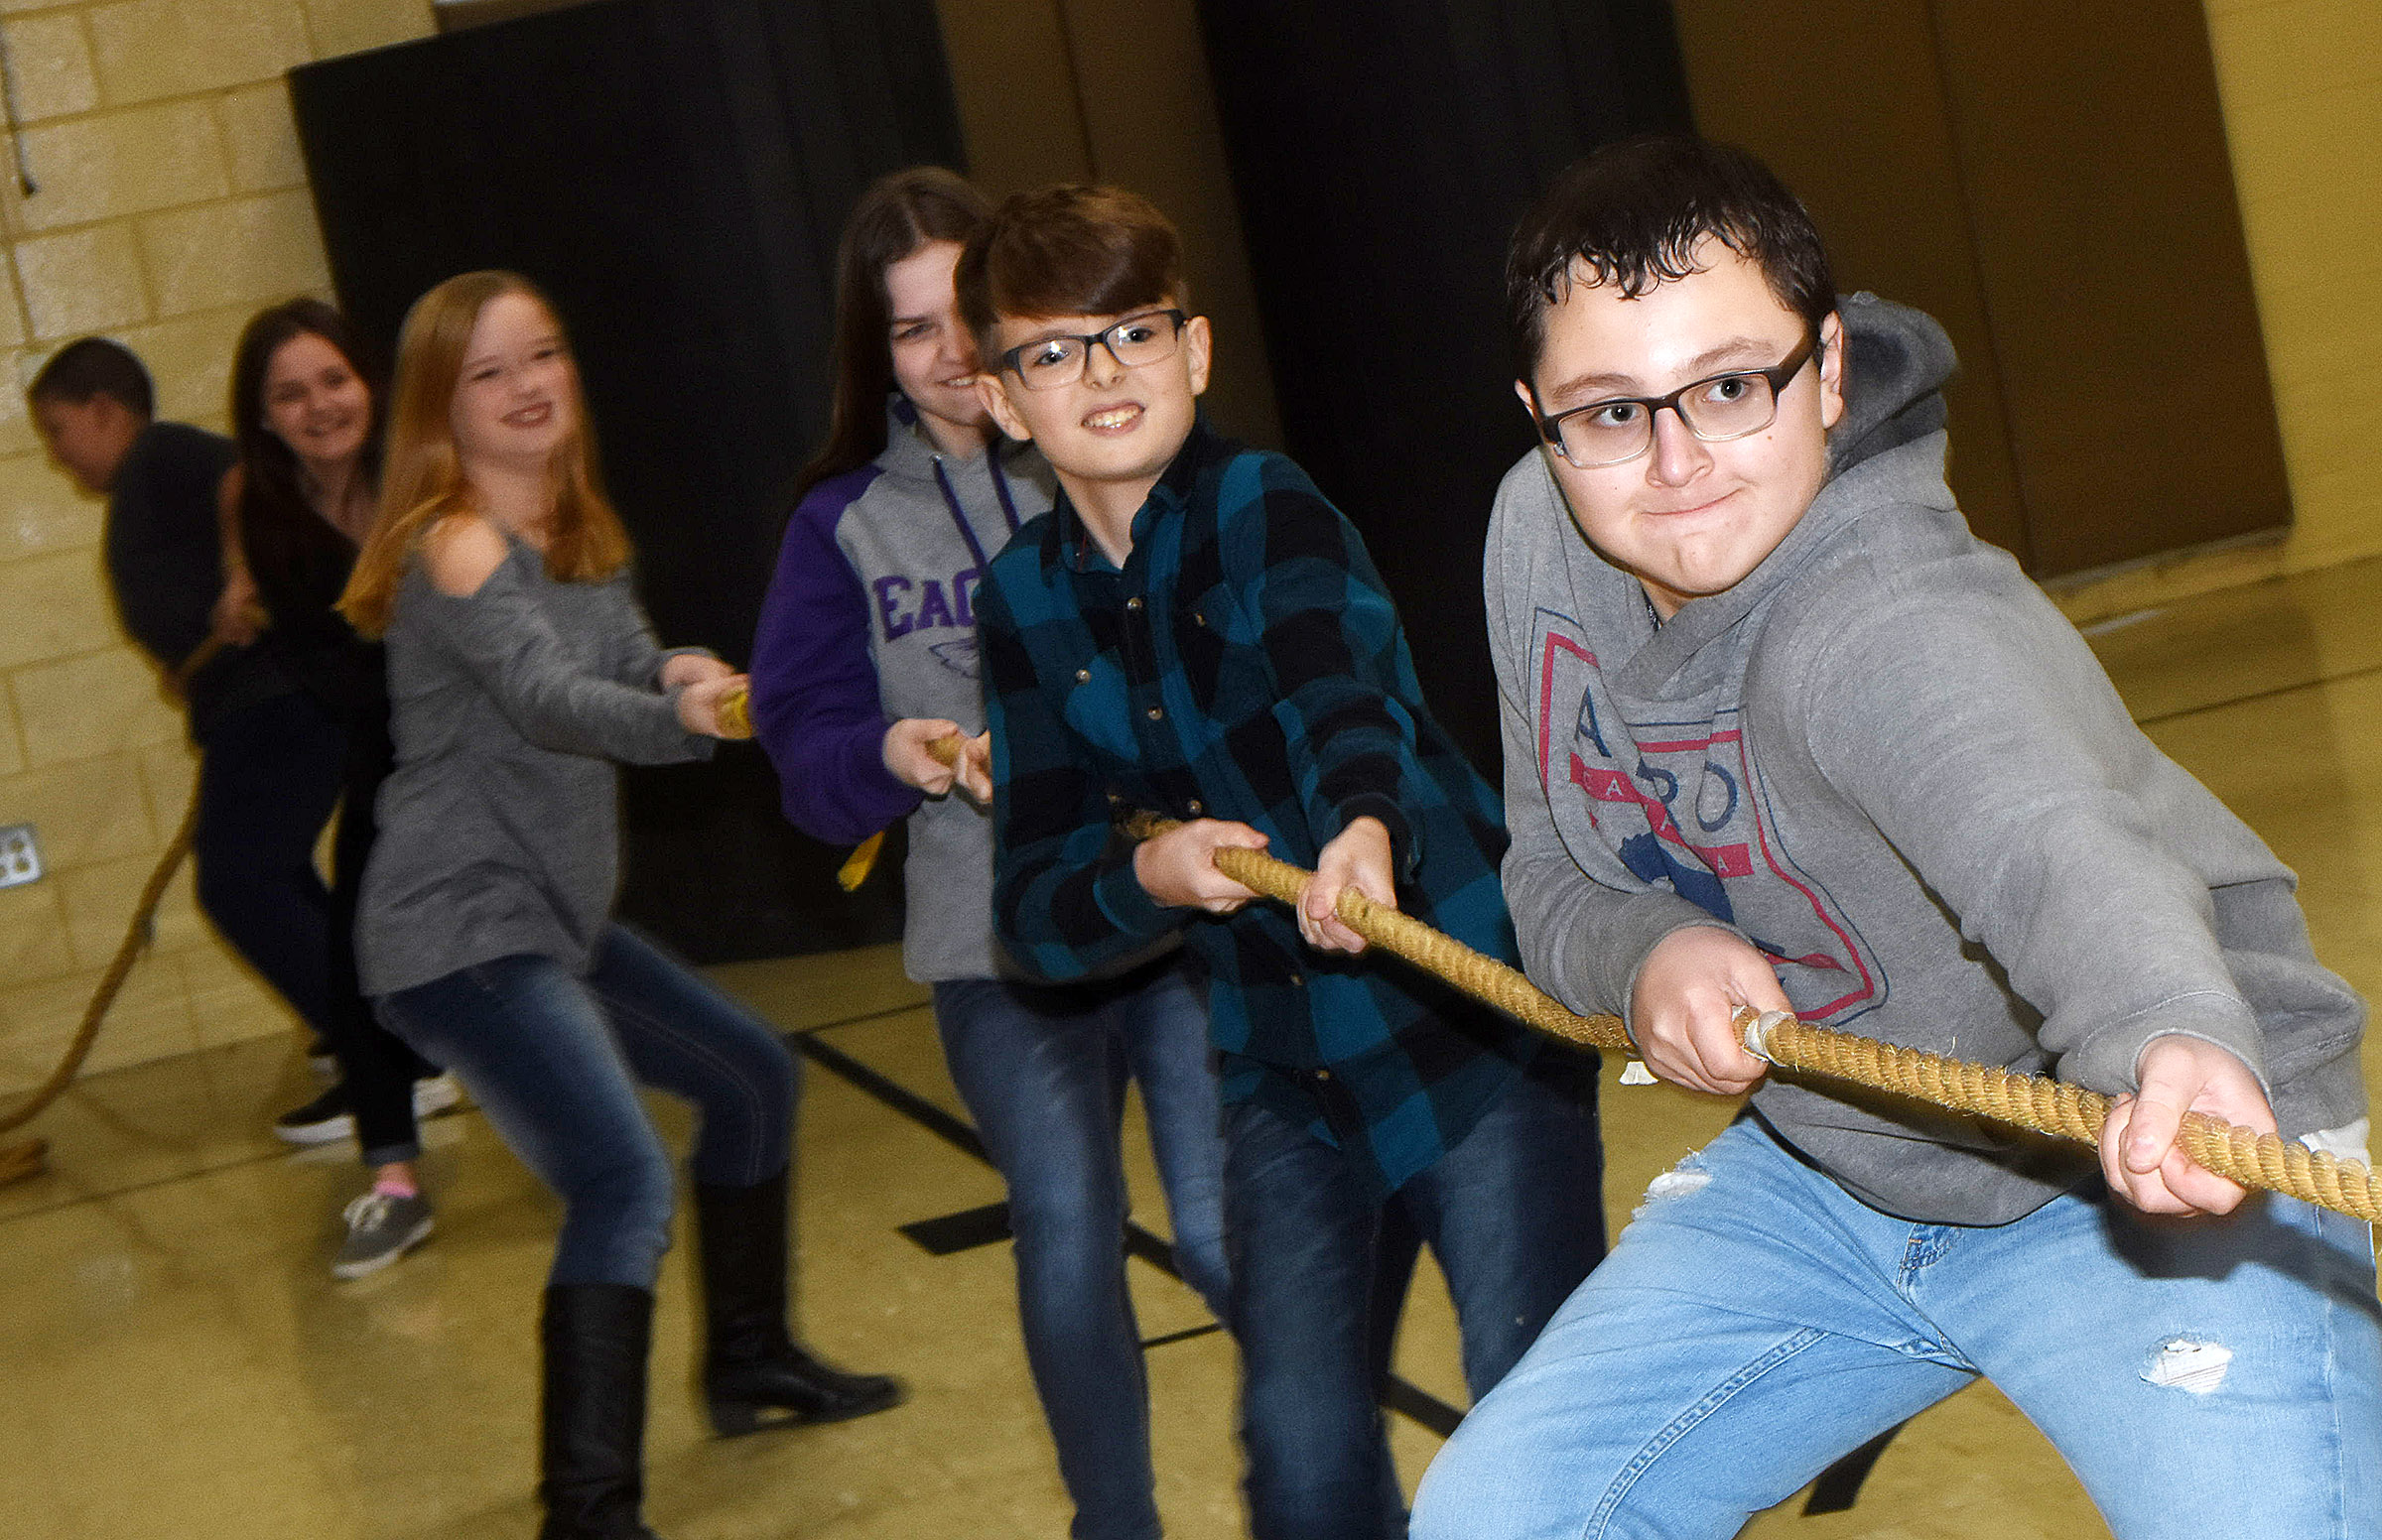 CMS eighth-graders Kanon Durham, at left, and Cameron Mahan lead their team as they play tug of war.